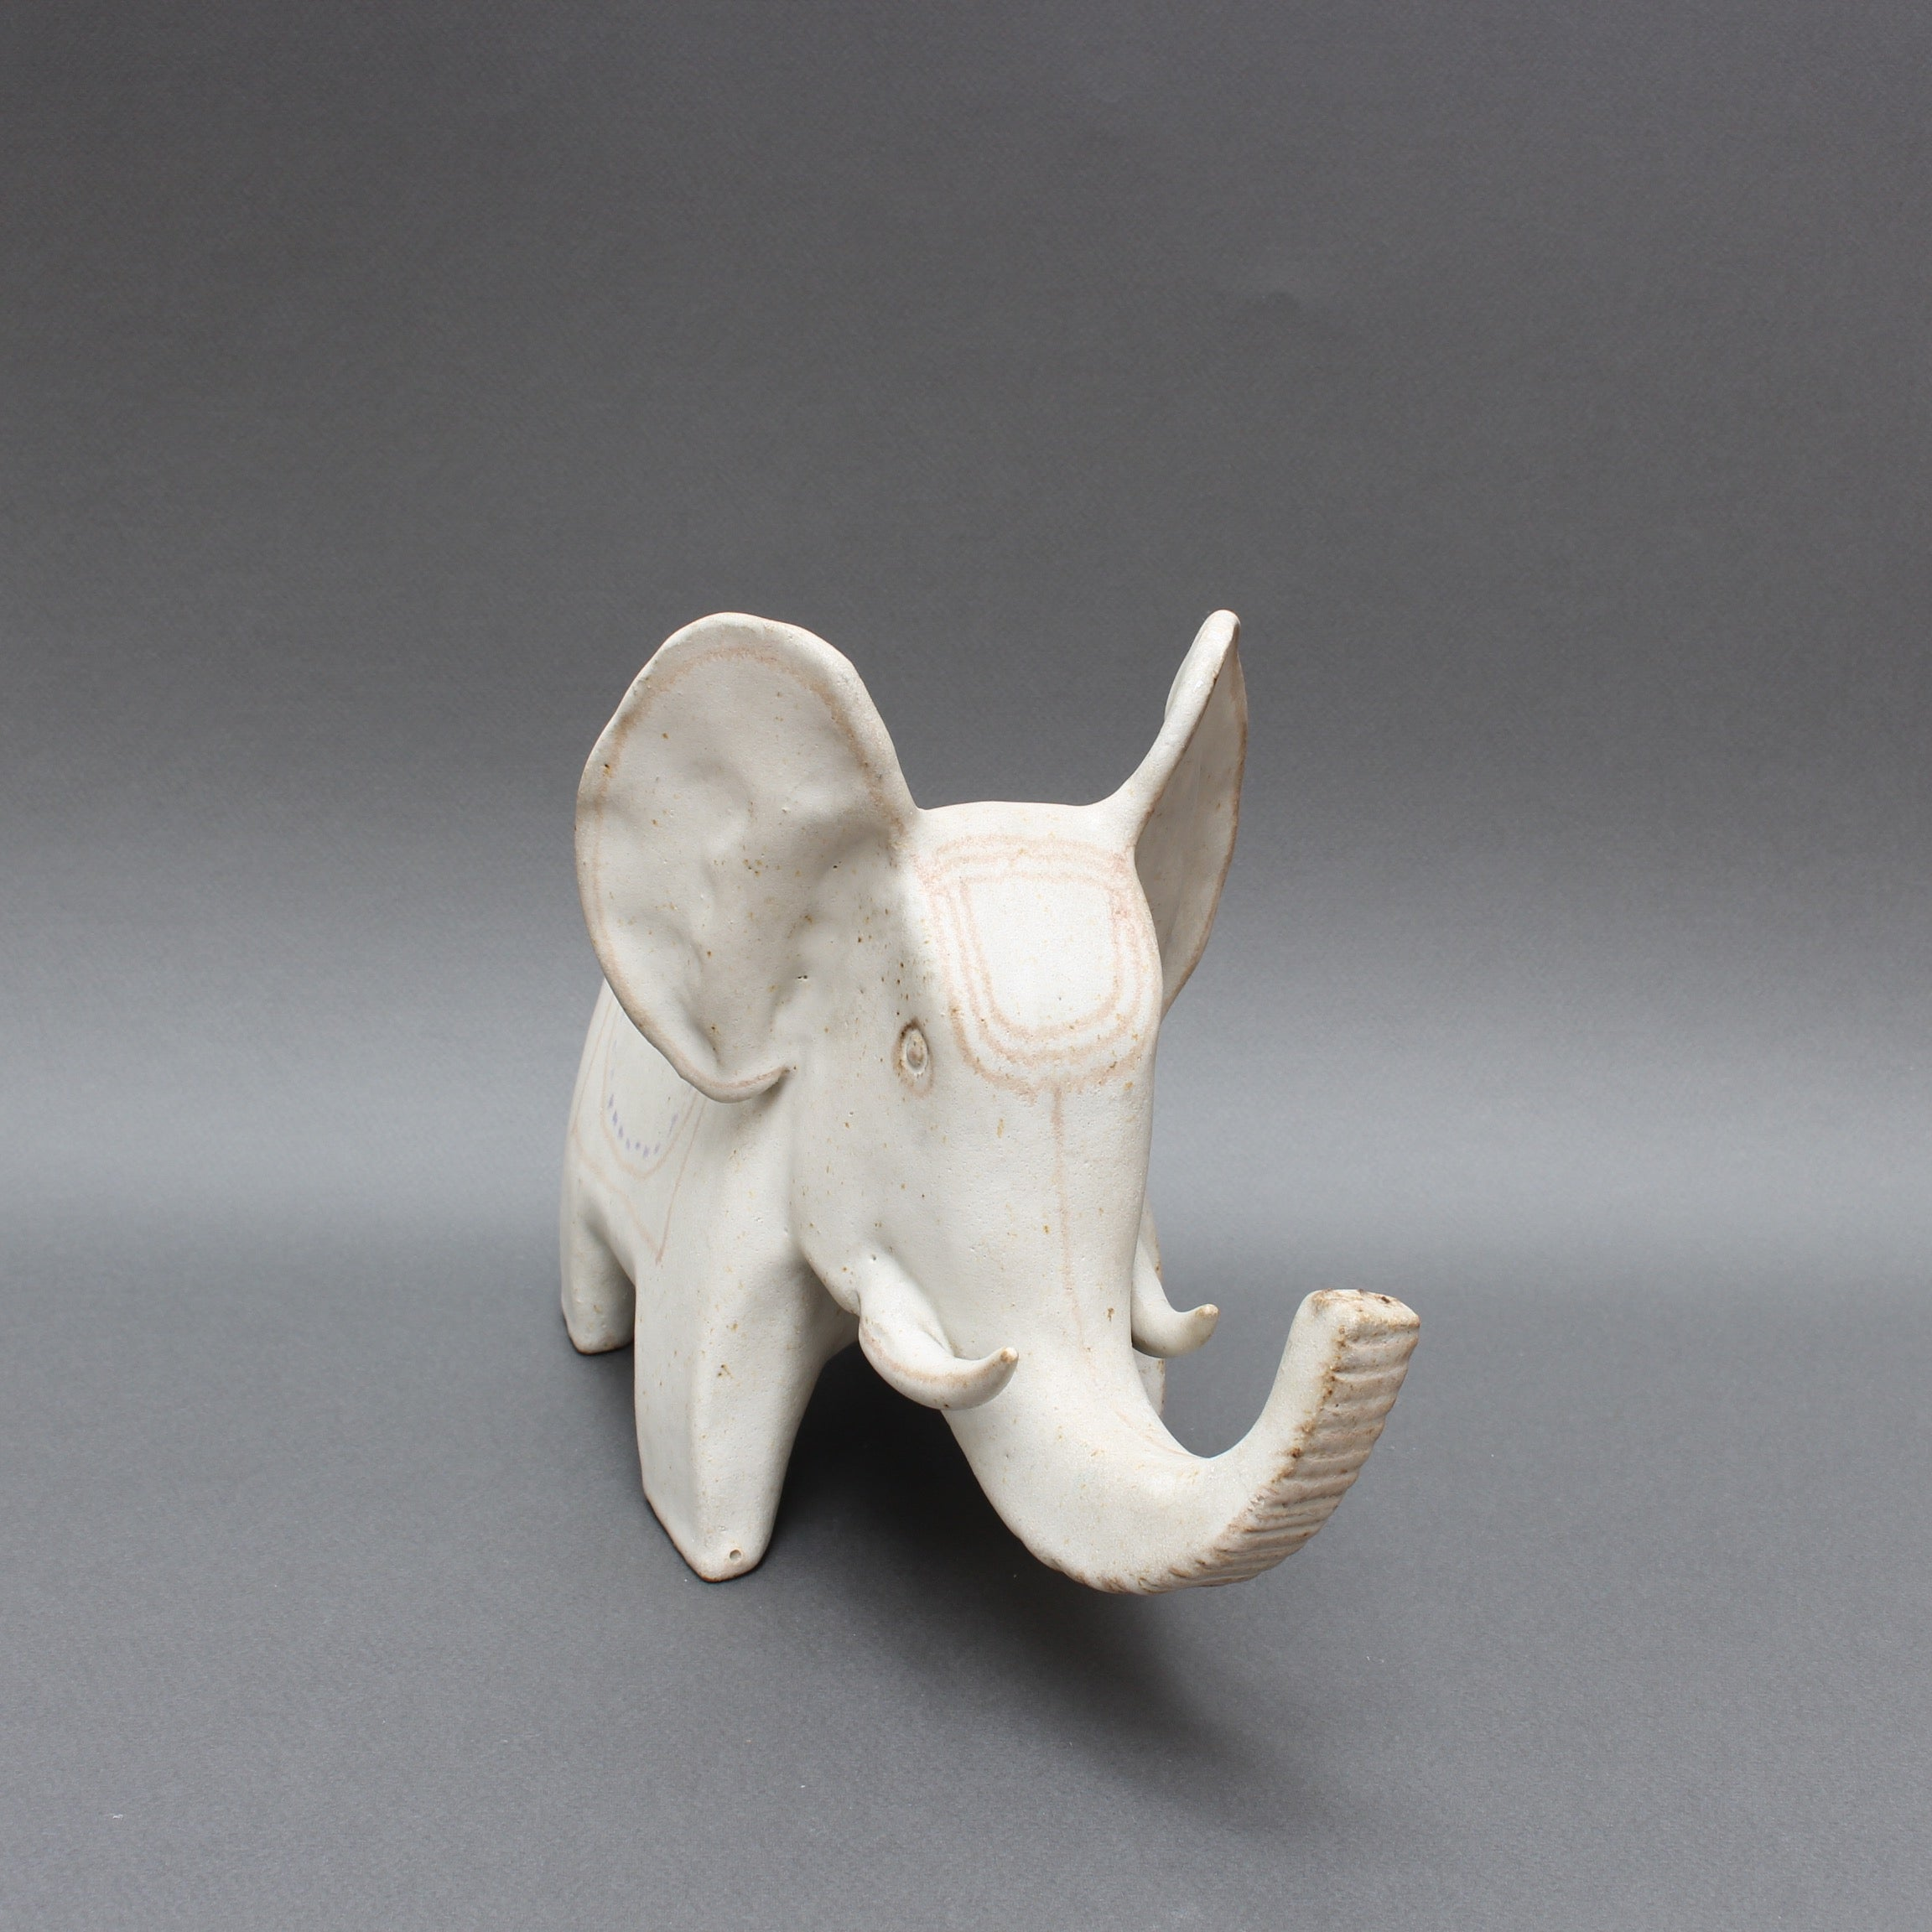 Ceramic White Elephant by Bruno Gambone (Circa 1970s)